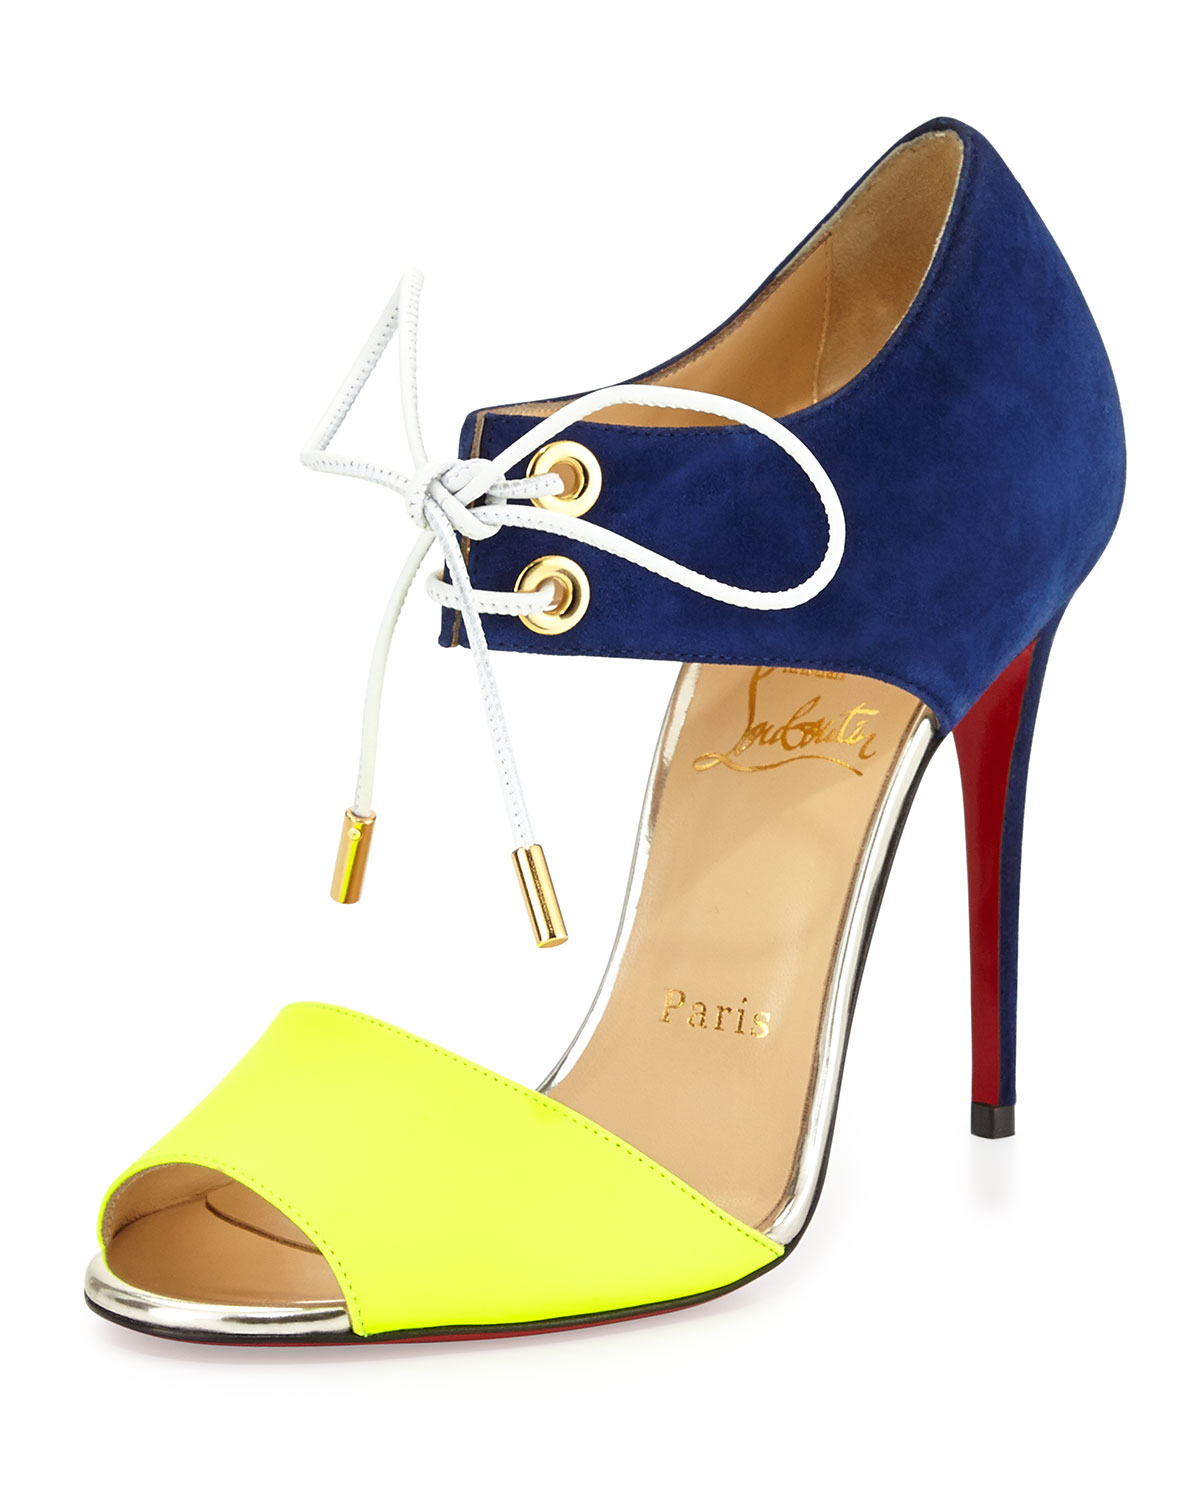 christian louboutin embellished patinana sandals Great store-wide ...